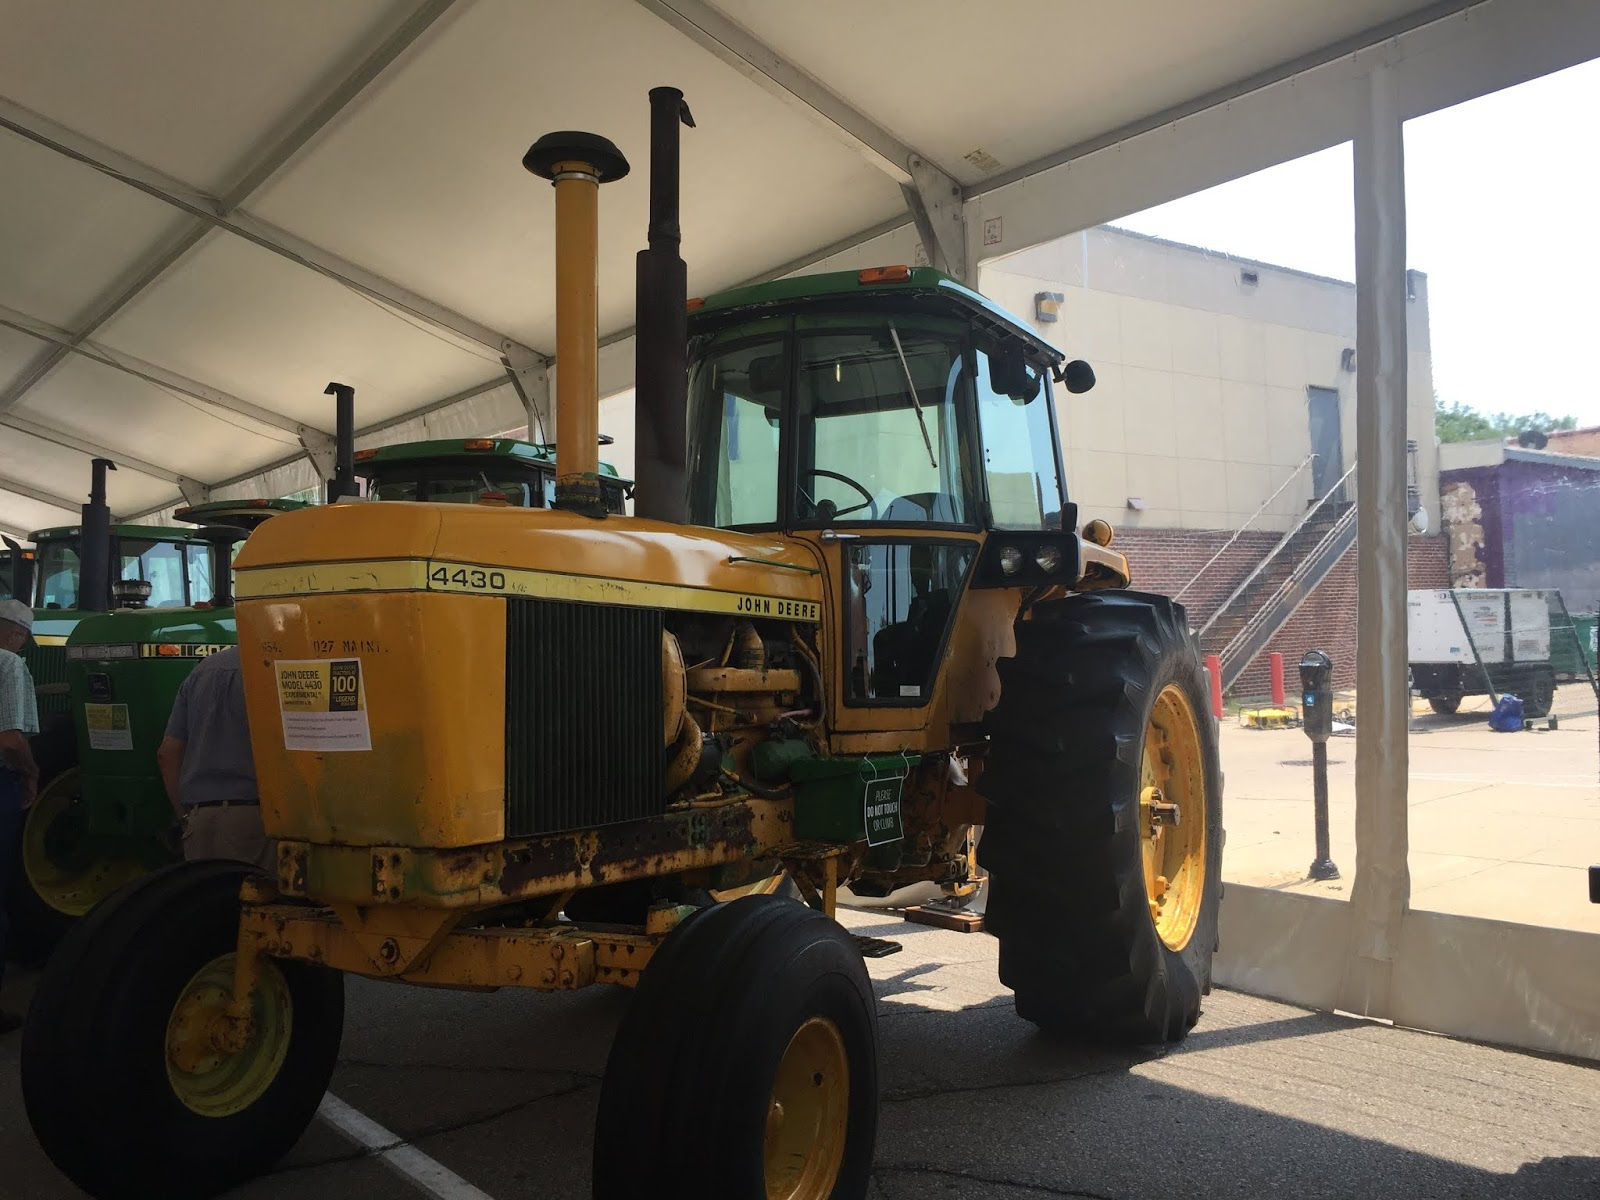 John Deere Tech Calmar 2018 2020 Wiring Harness So It Is A Prototype 4430 Has 404t With Stanadyne Pump Maybe 4320 Engine An 8 Speed Powershift Does Not Have Door By The Brake